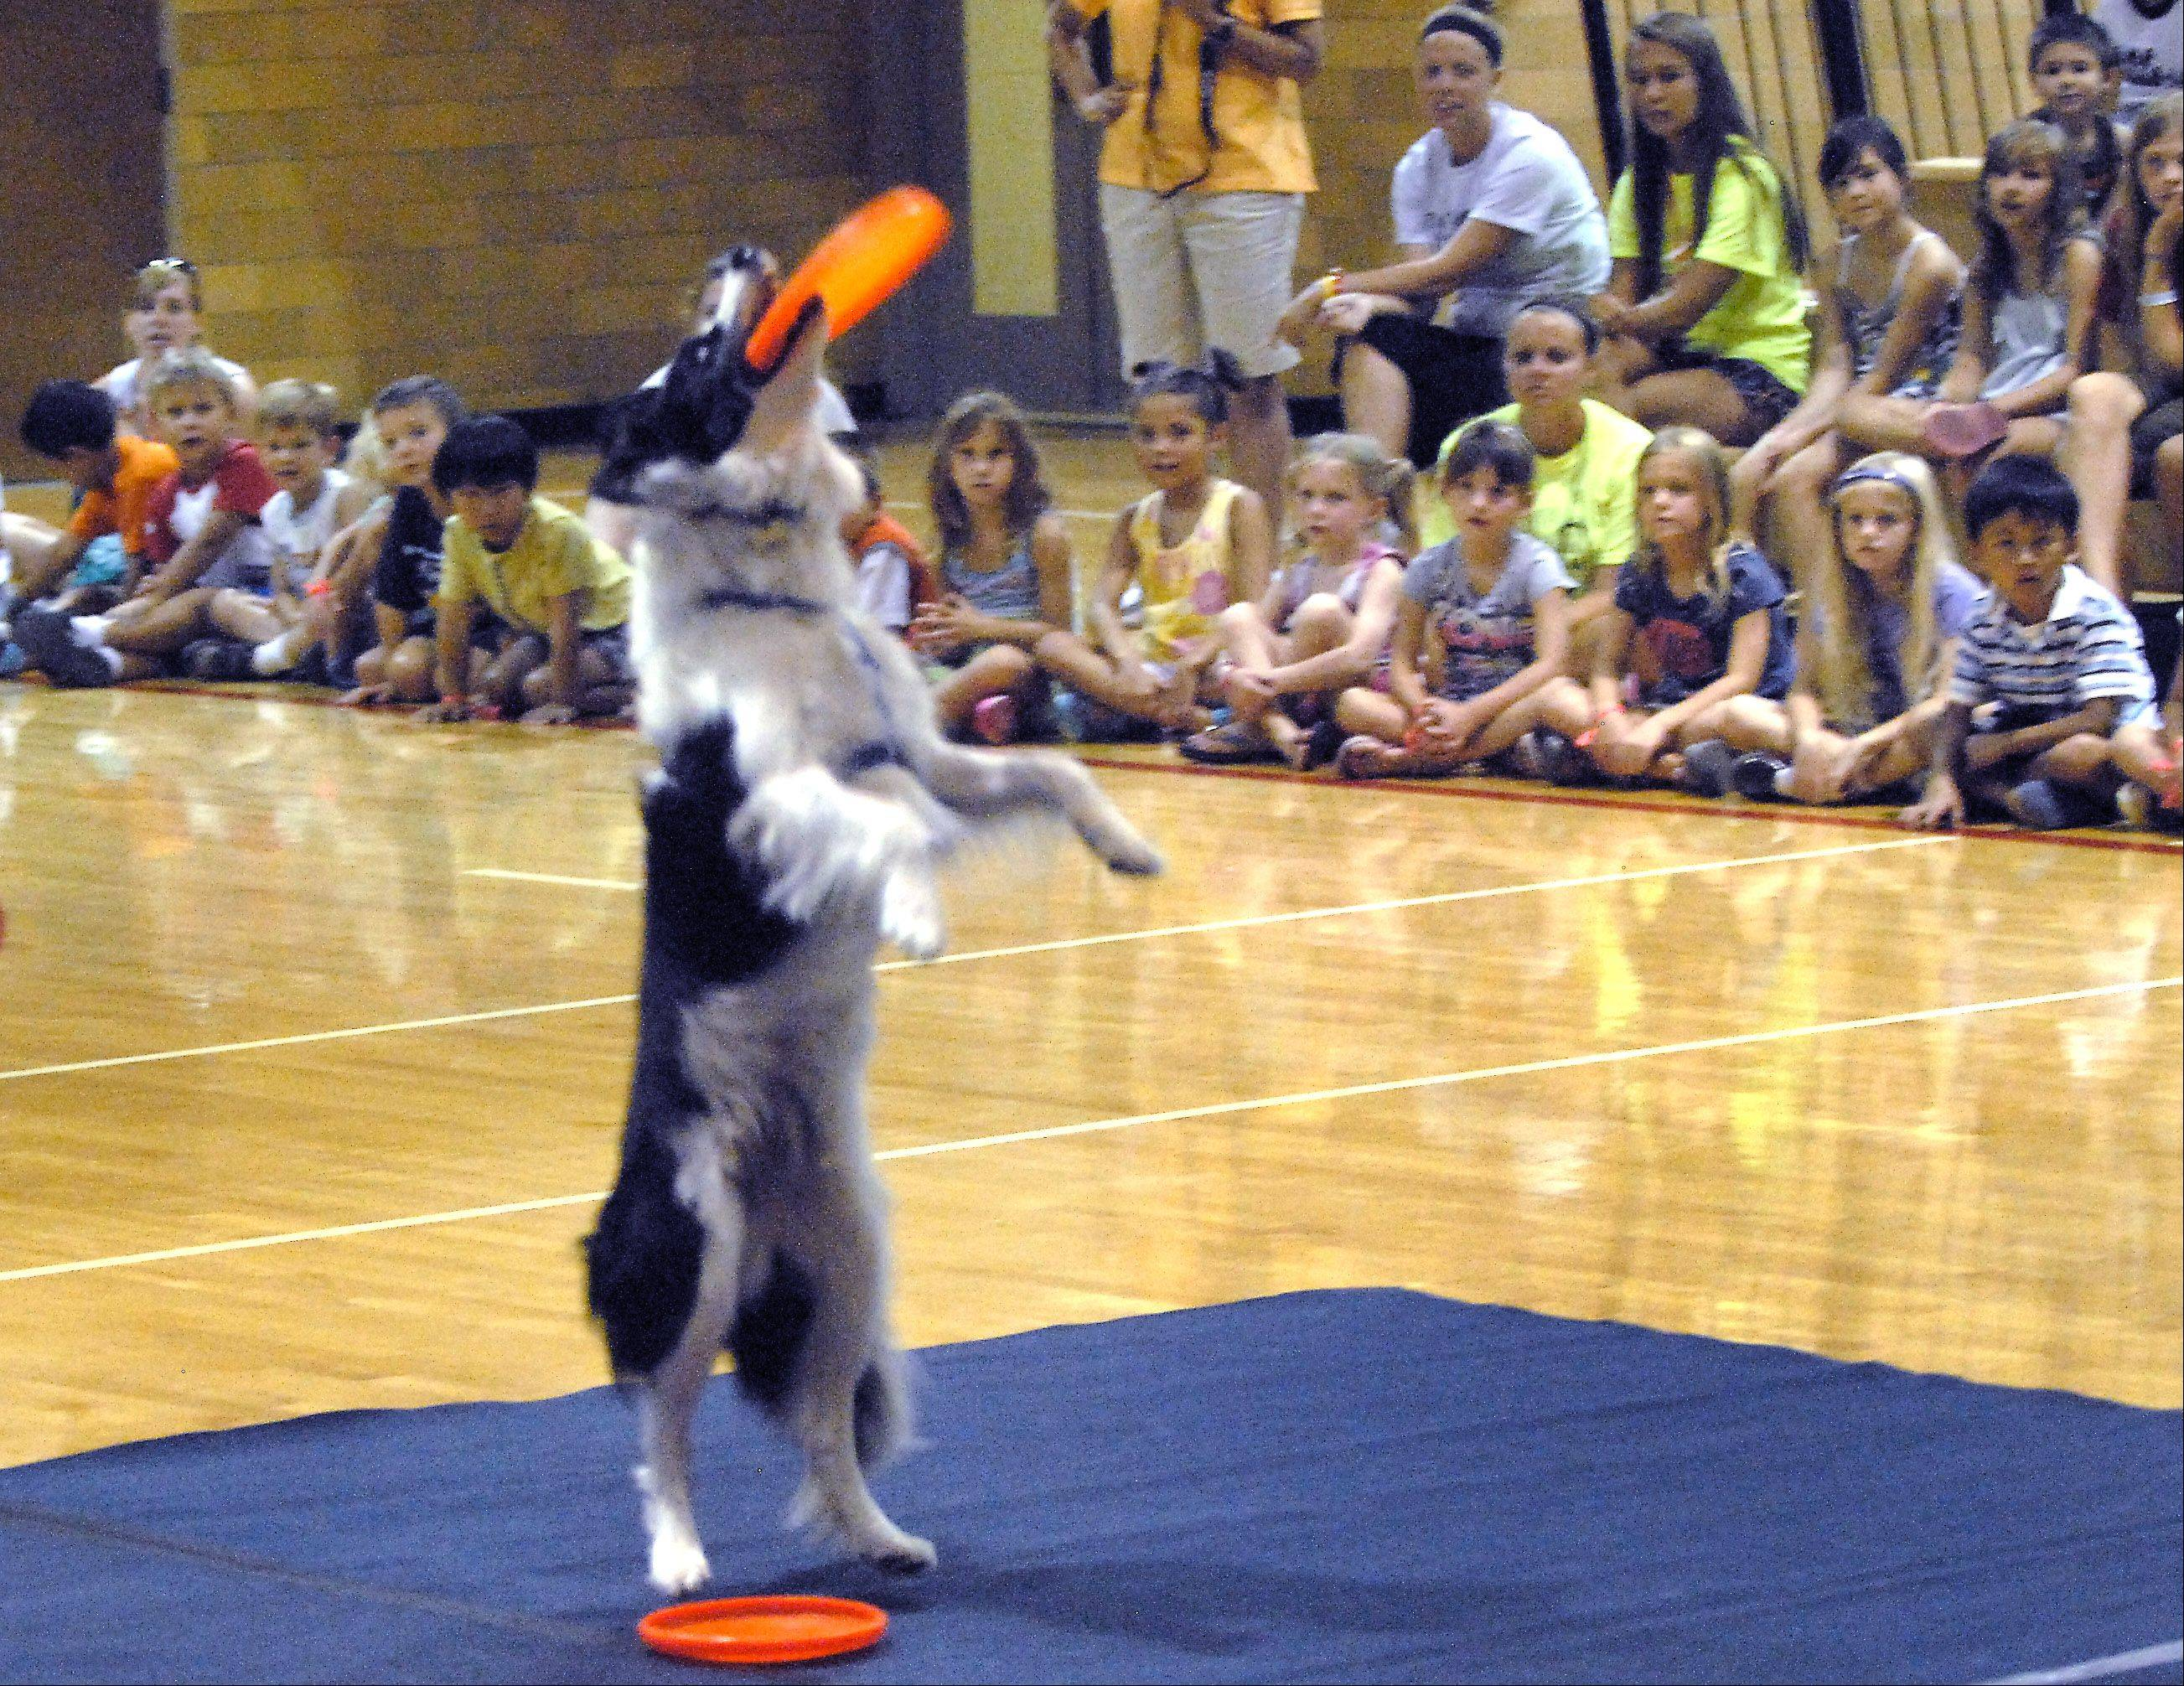 Shea, a Border Collie, stands up to catch a Frisbee during a performance Wednesday by the FlyDogs at the Palatine Park District's Community Center Gym.